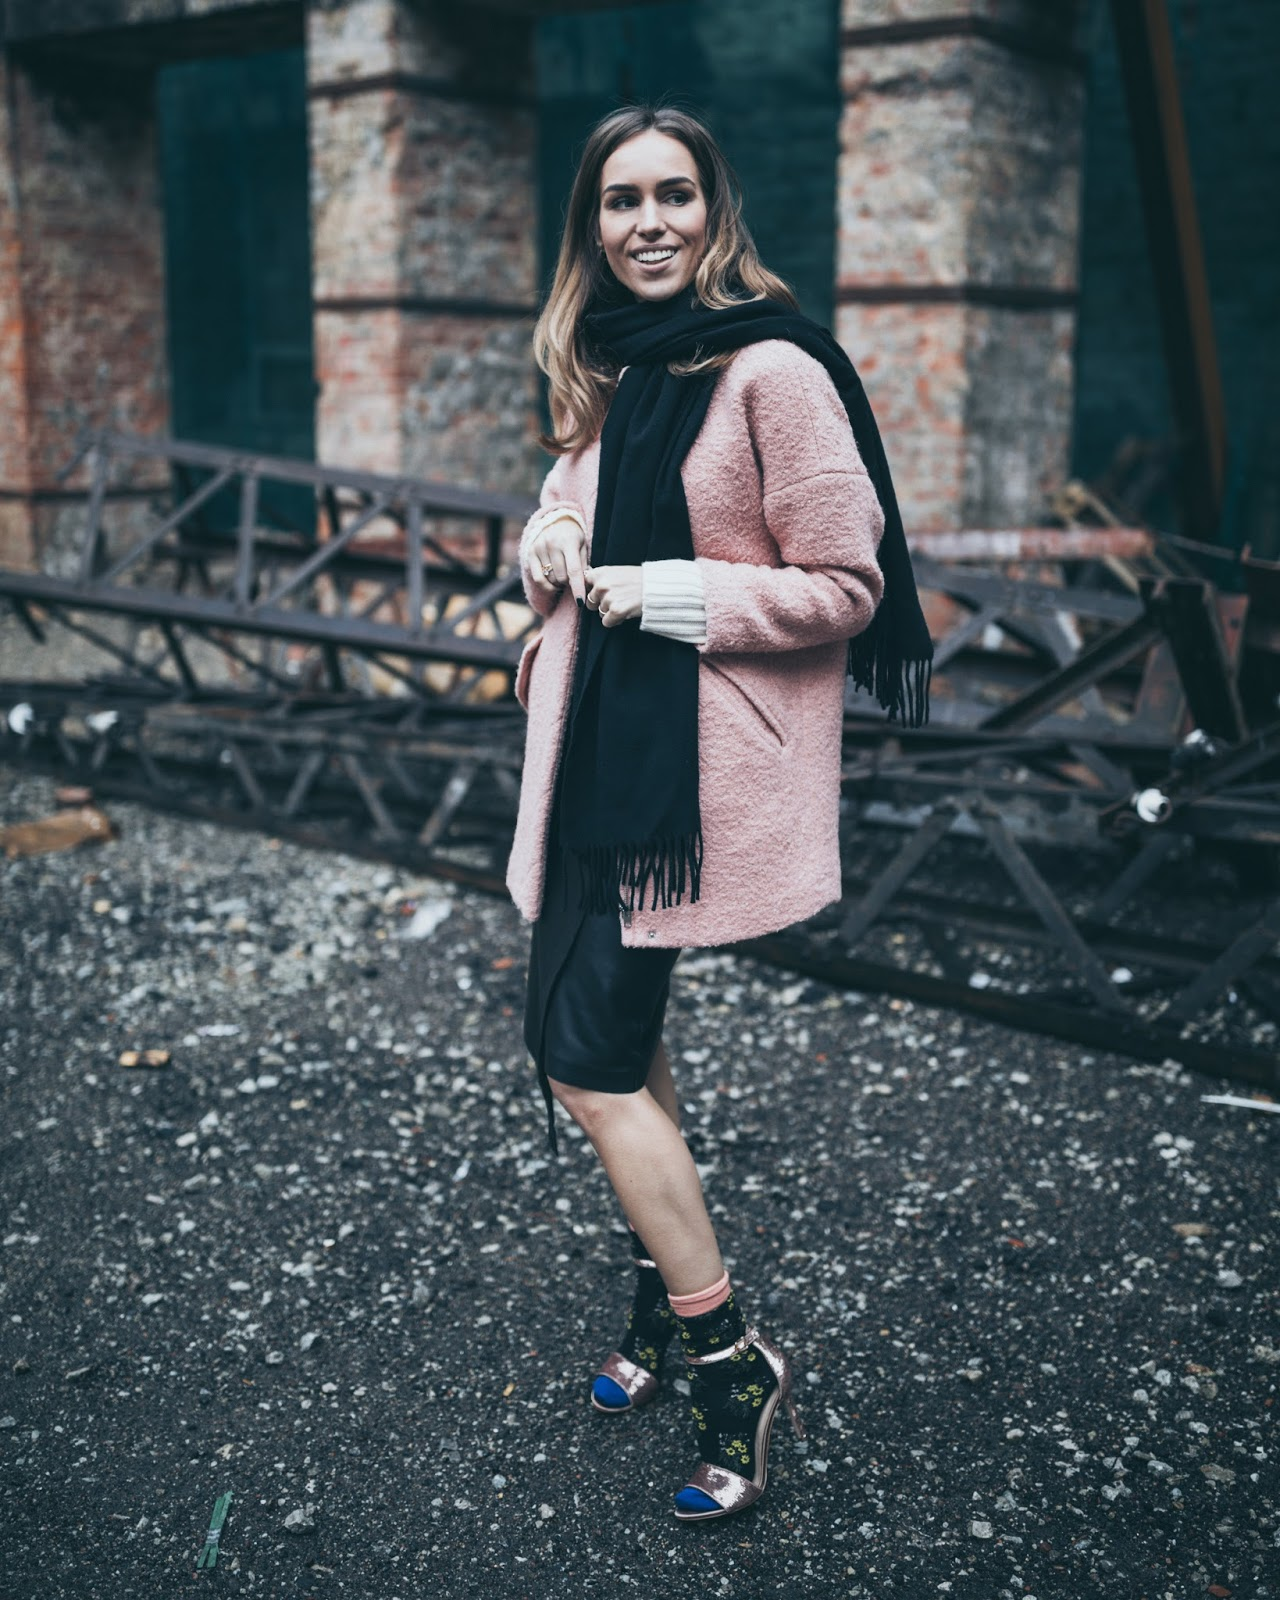 sandals with socks outfit winter skirt